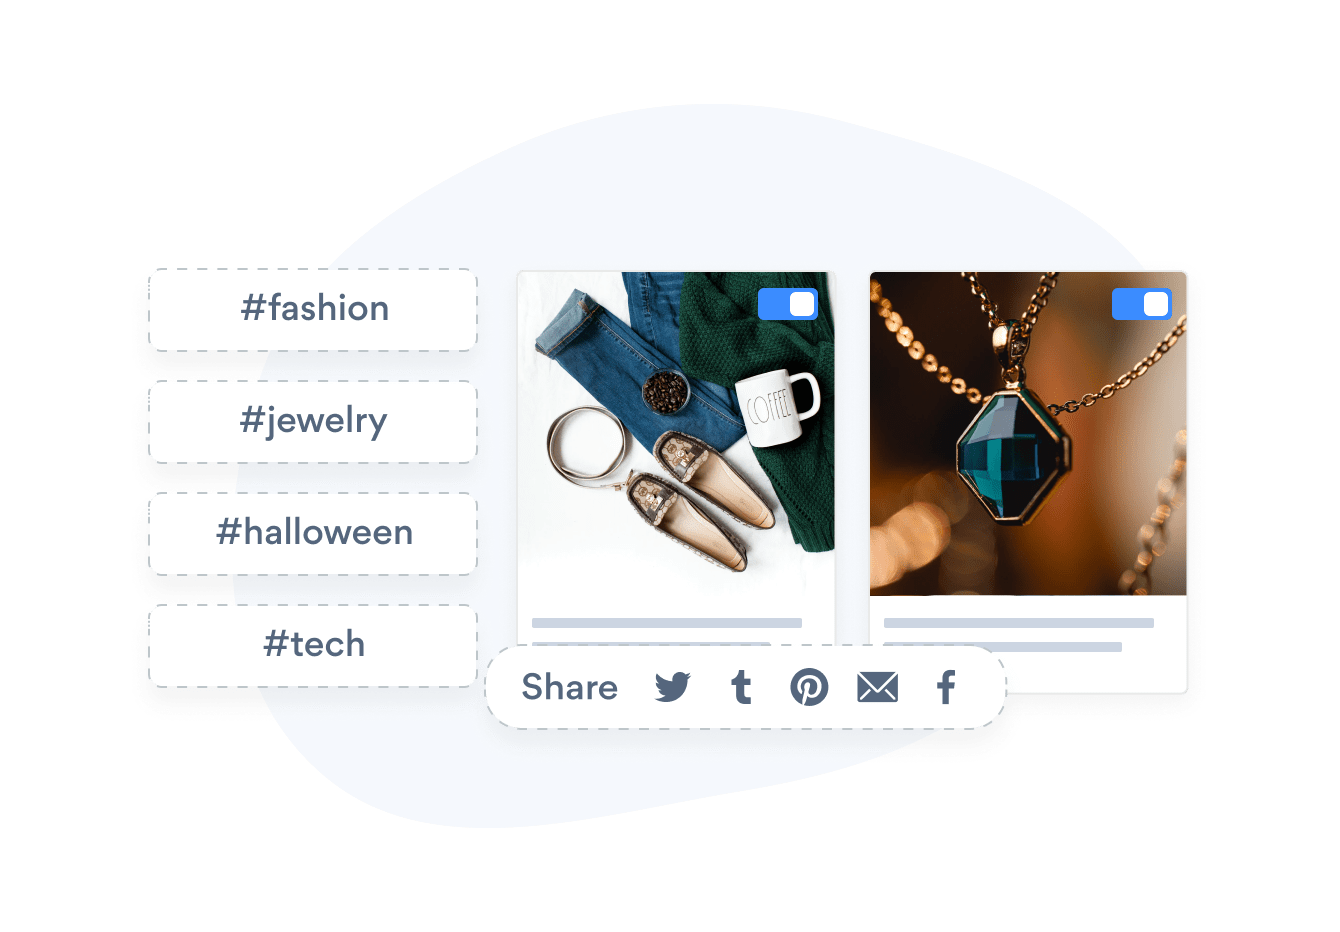 Social Feed by POWR that uses hashtags to find images and that has social sharing buttons.